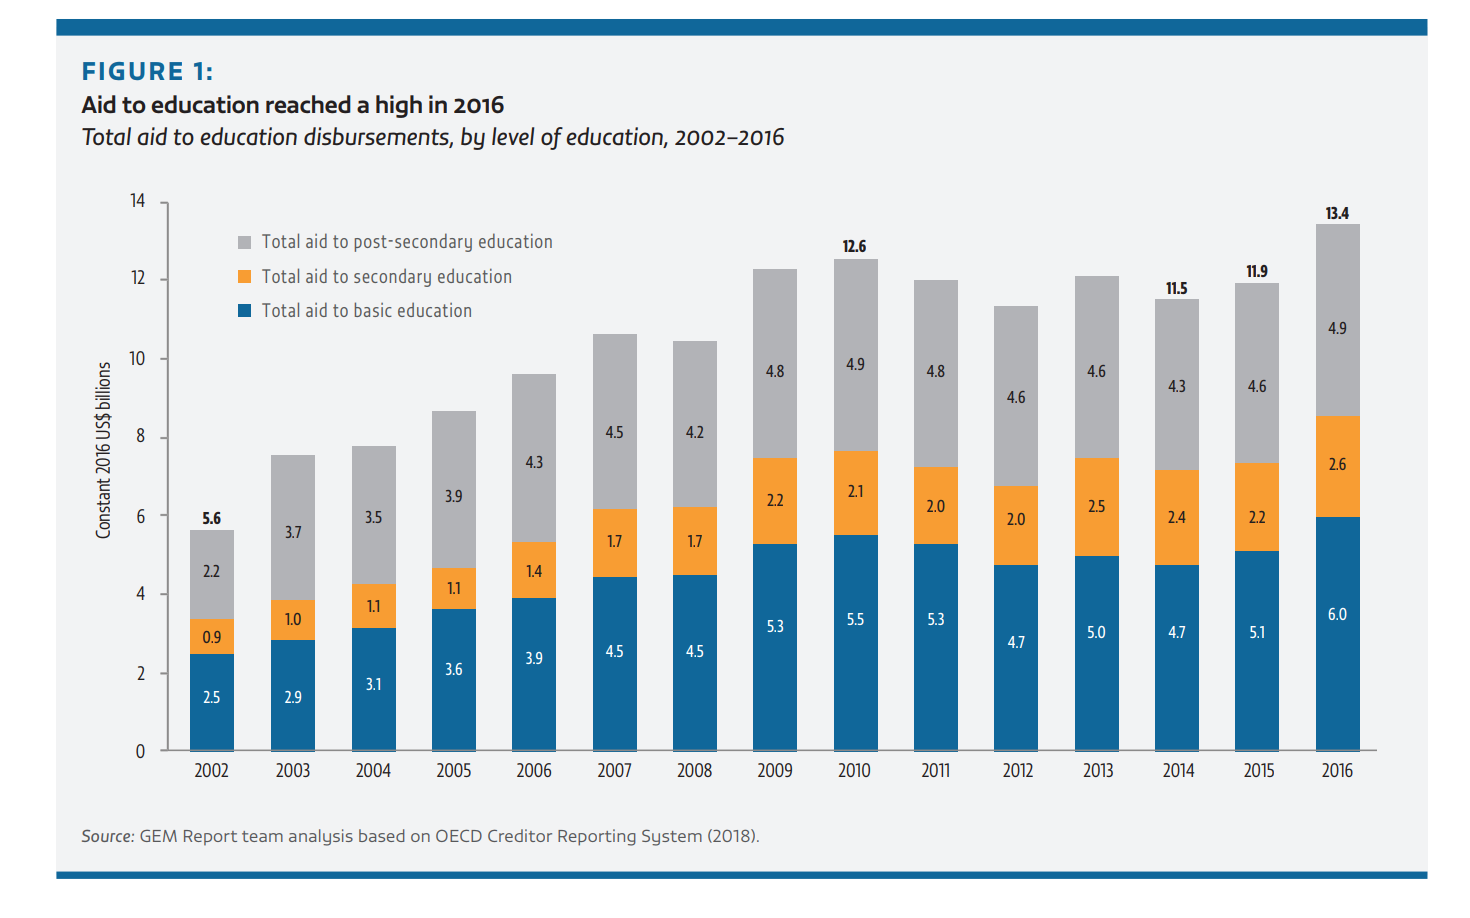 Aid to education reached a high in 2016